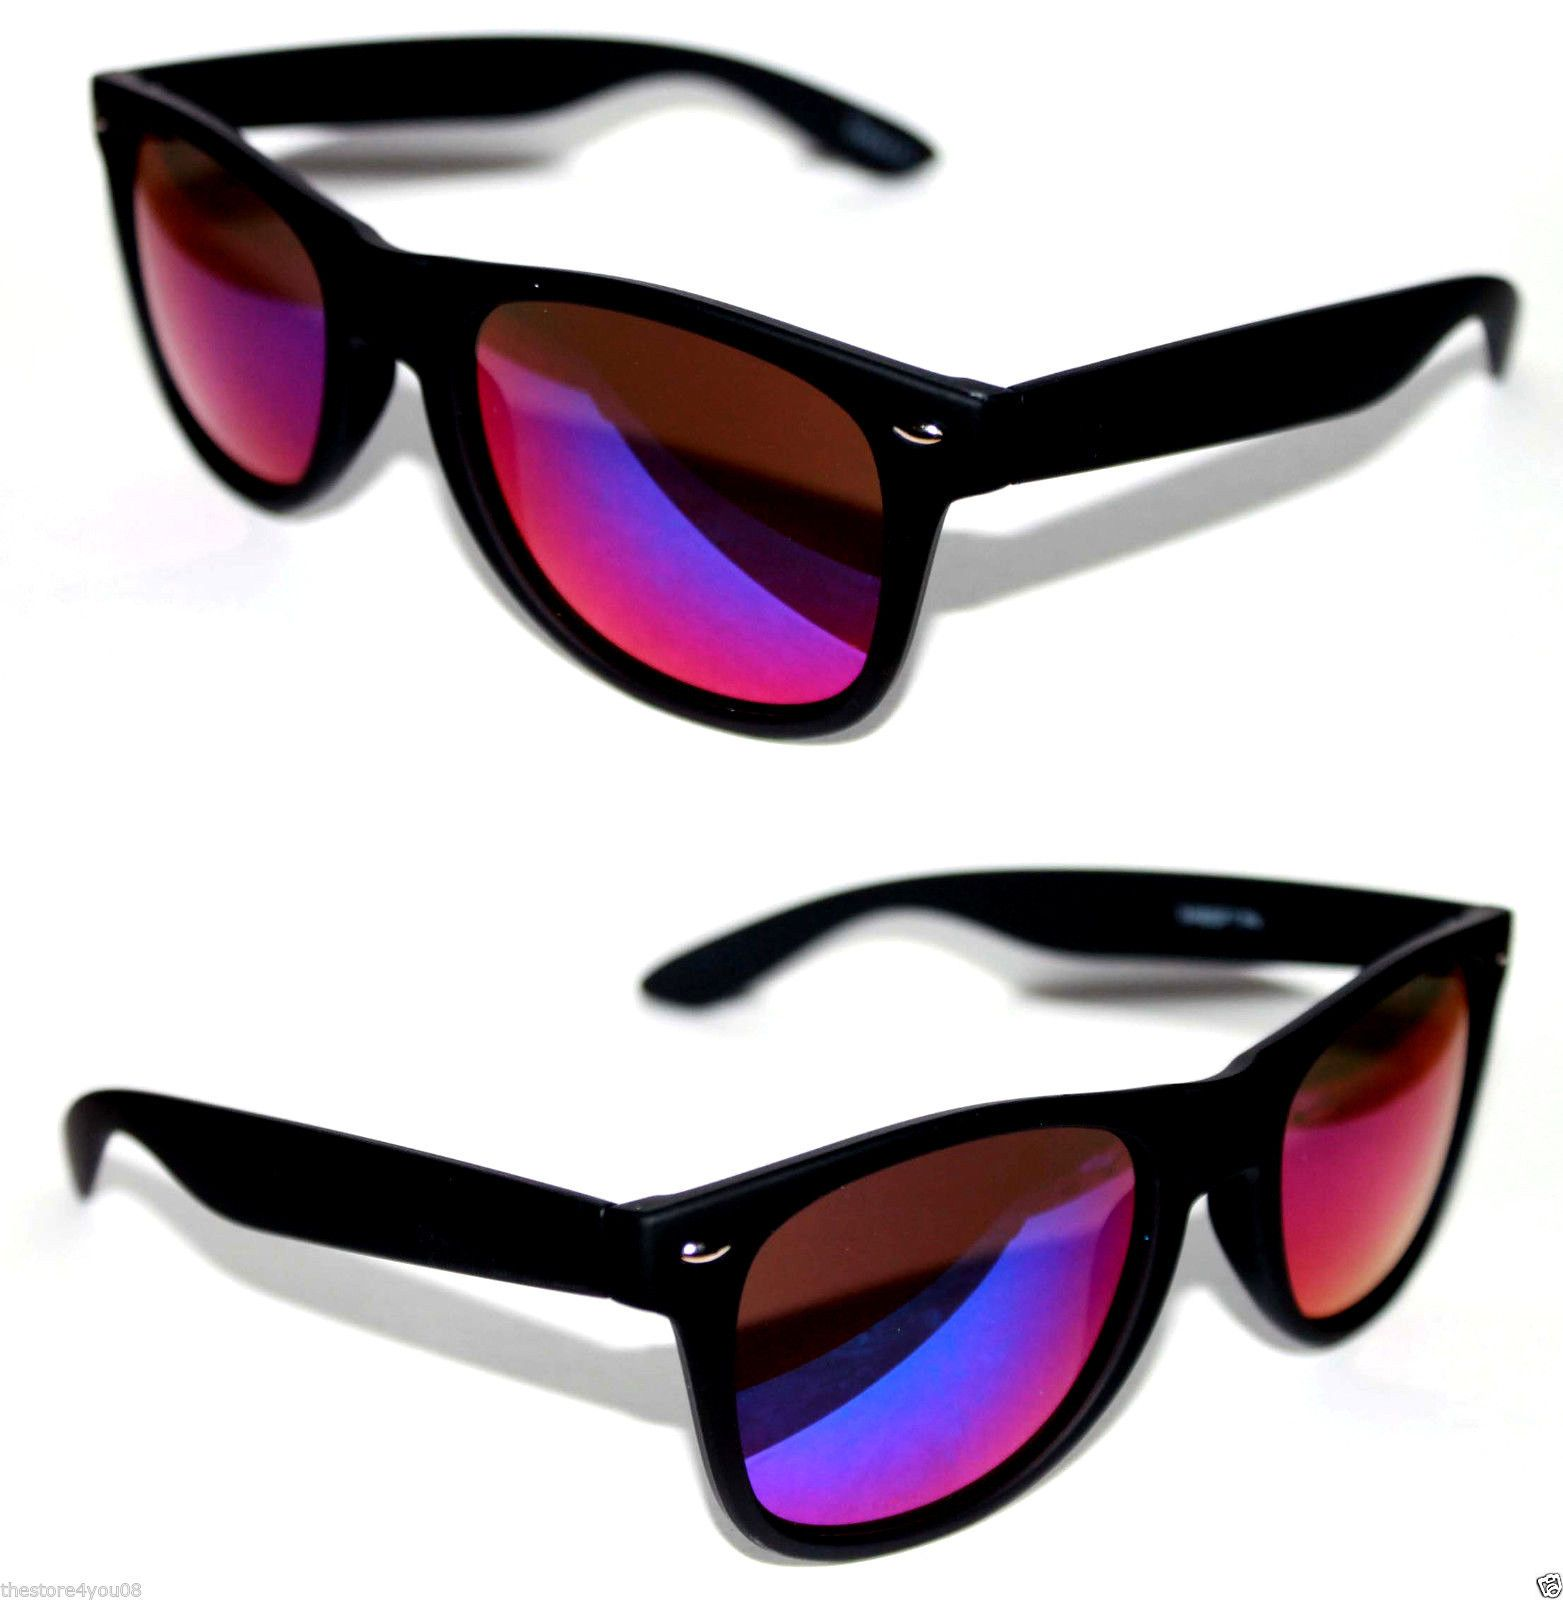 190c65722e98bd Wayfarer Sunglasses Rubber Matte Black Frame Blue Purple Mirrored Lens  Retro 30